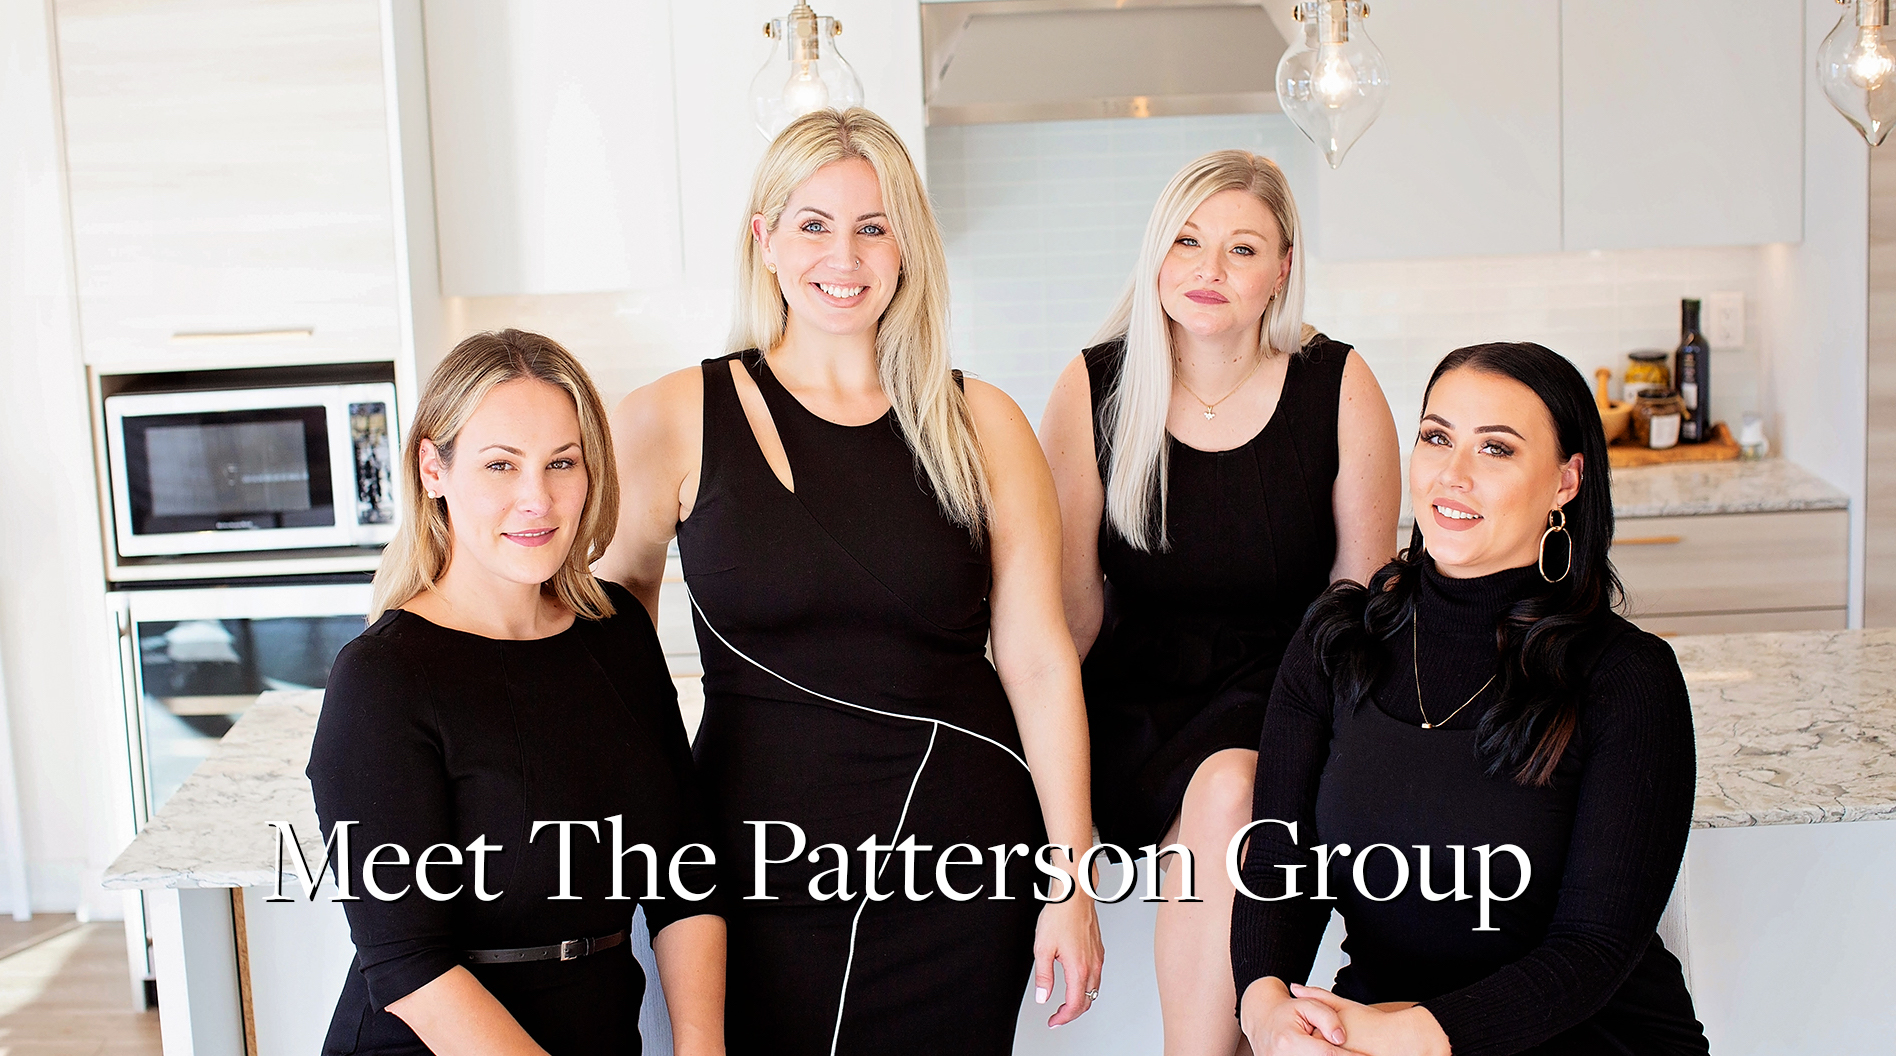 Welcome to The Patterson Group with Ashley Patterson, Sara Allen, and Lisa Purdy